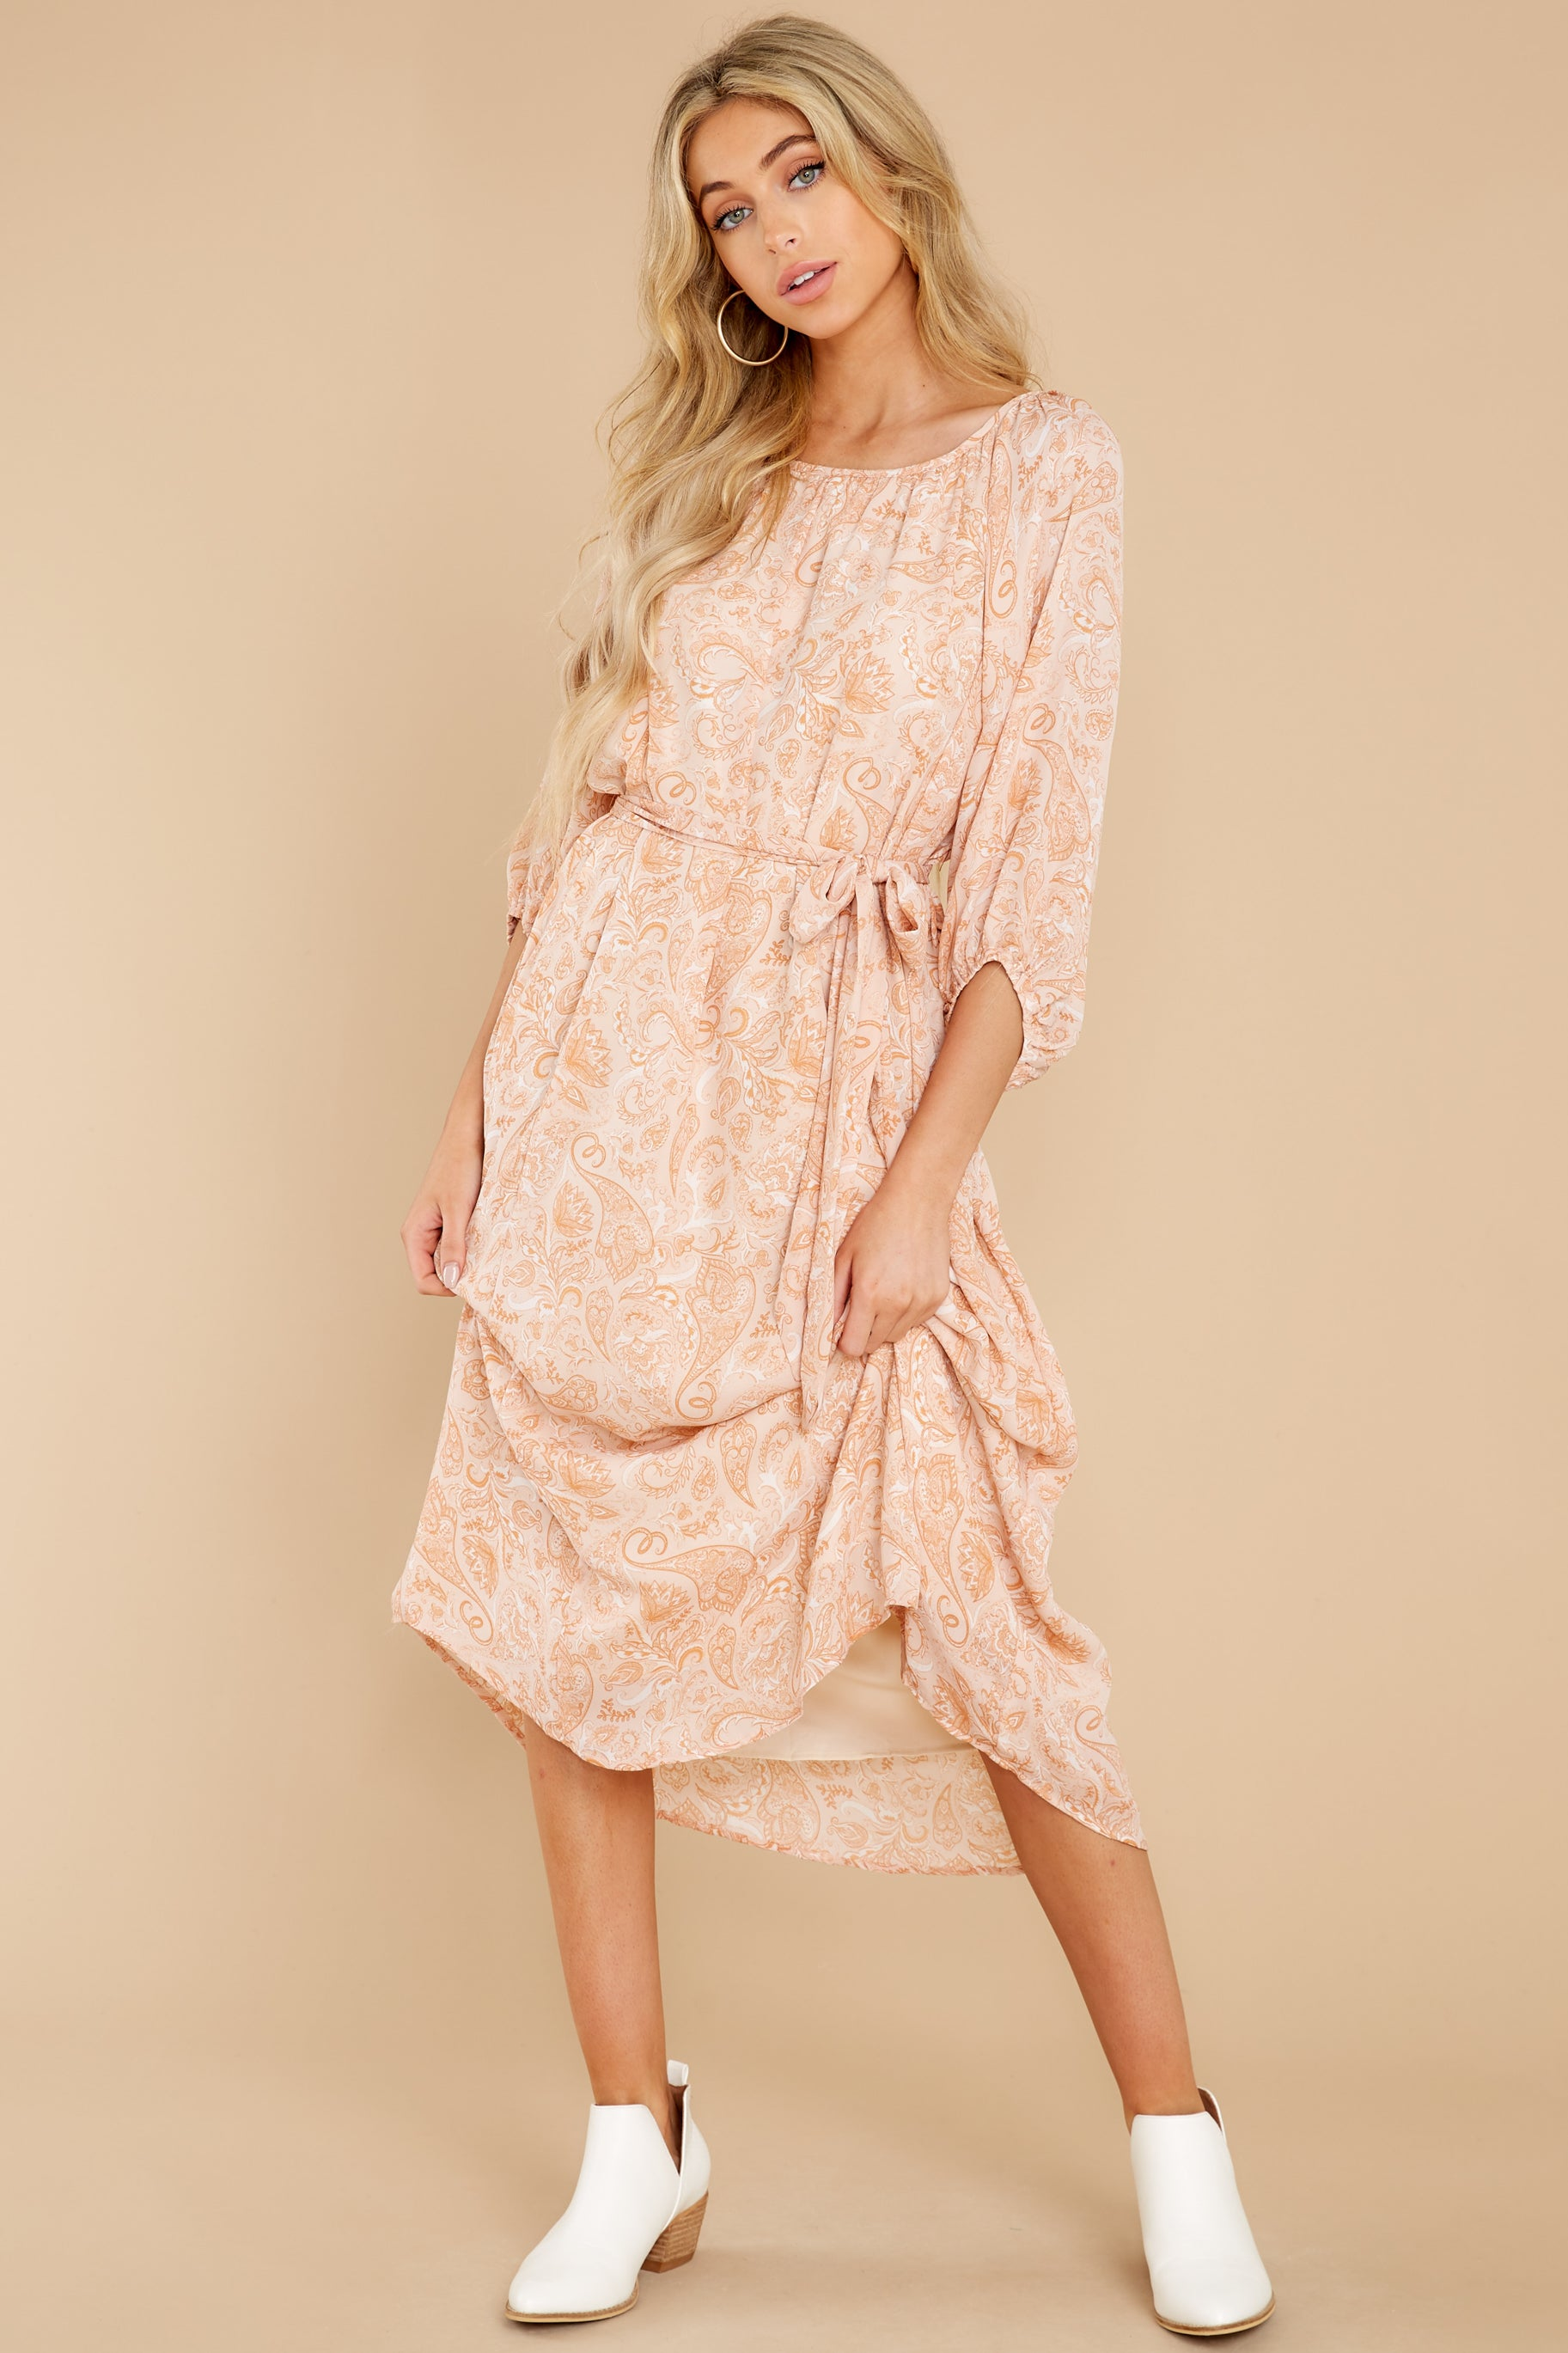 Vintage Style Dresses | Vintage Inspired Dresses Aura Sunlit Reverie Apricot Print Midi Dress Orange $52.00 AT vintagedancer.com